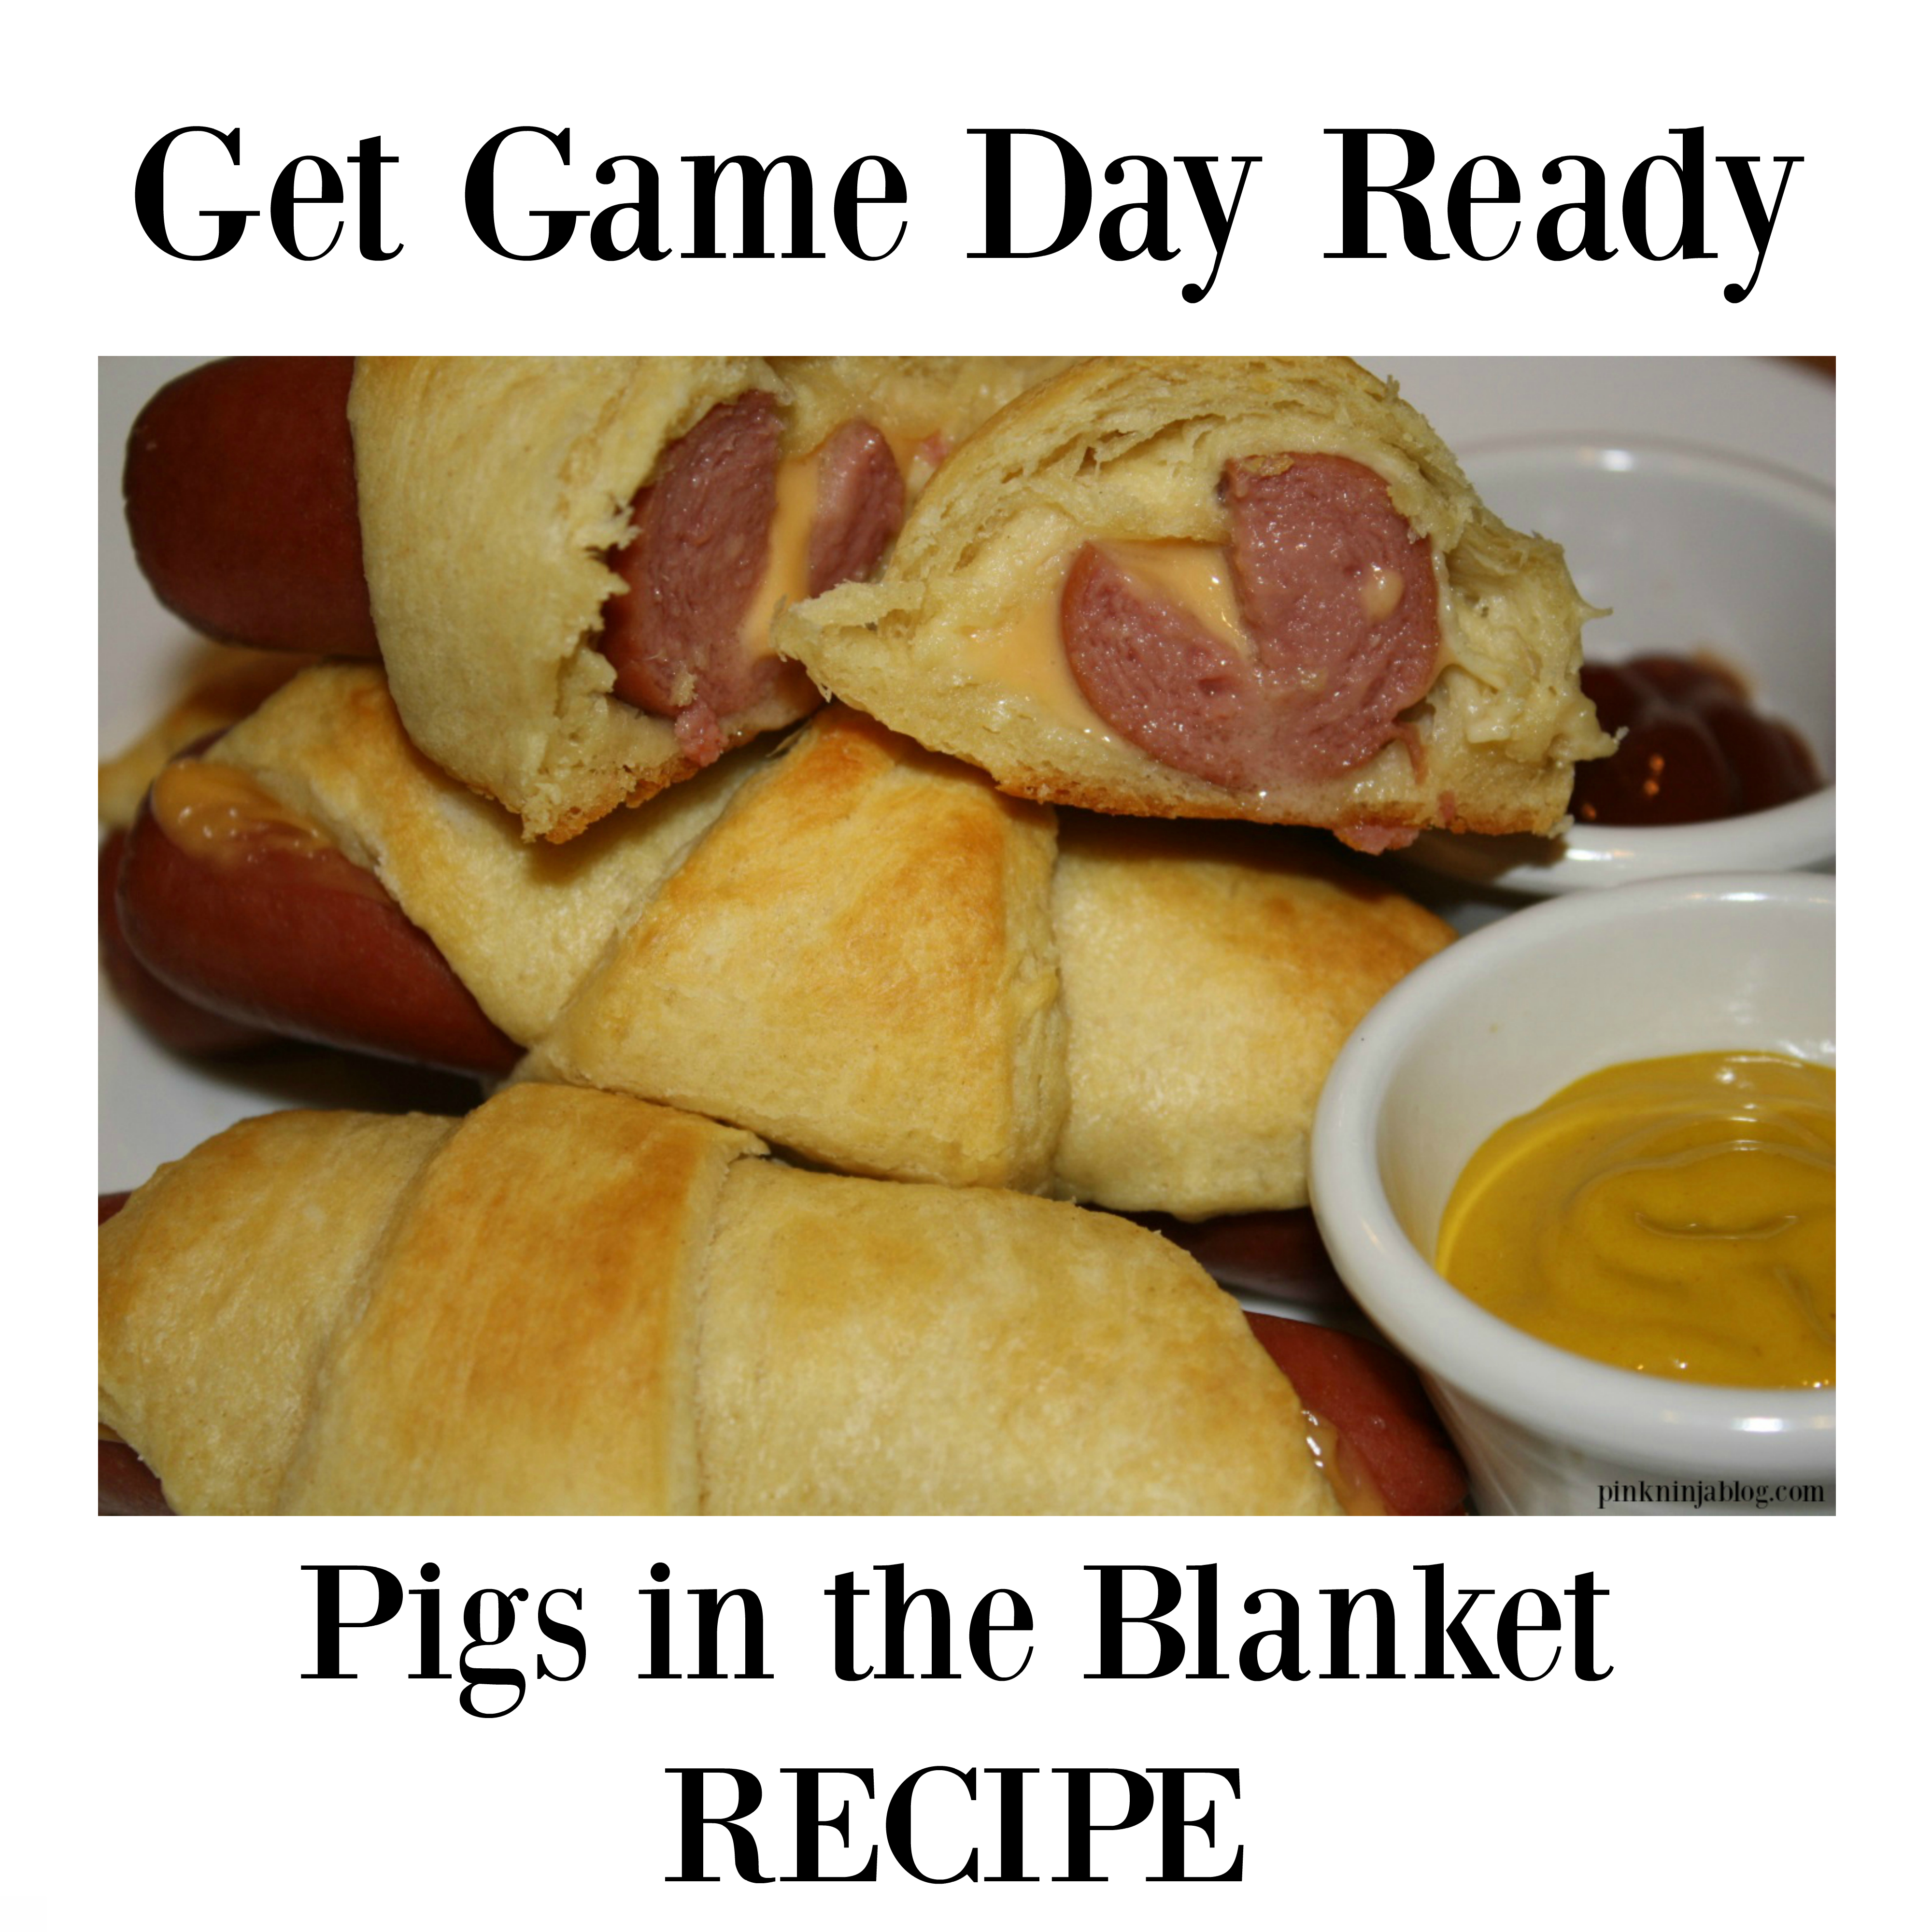 Get Game Day Ready with Our Pigs in the Blanket Recipe